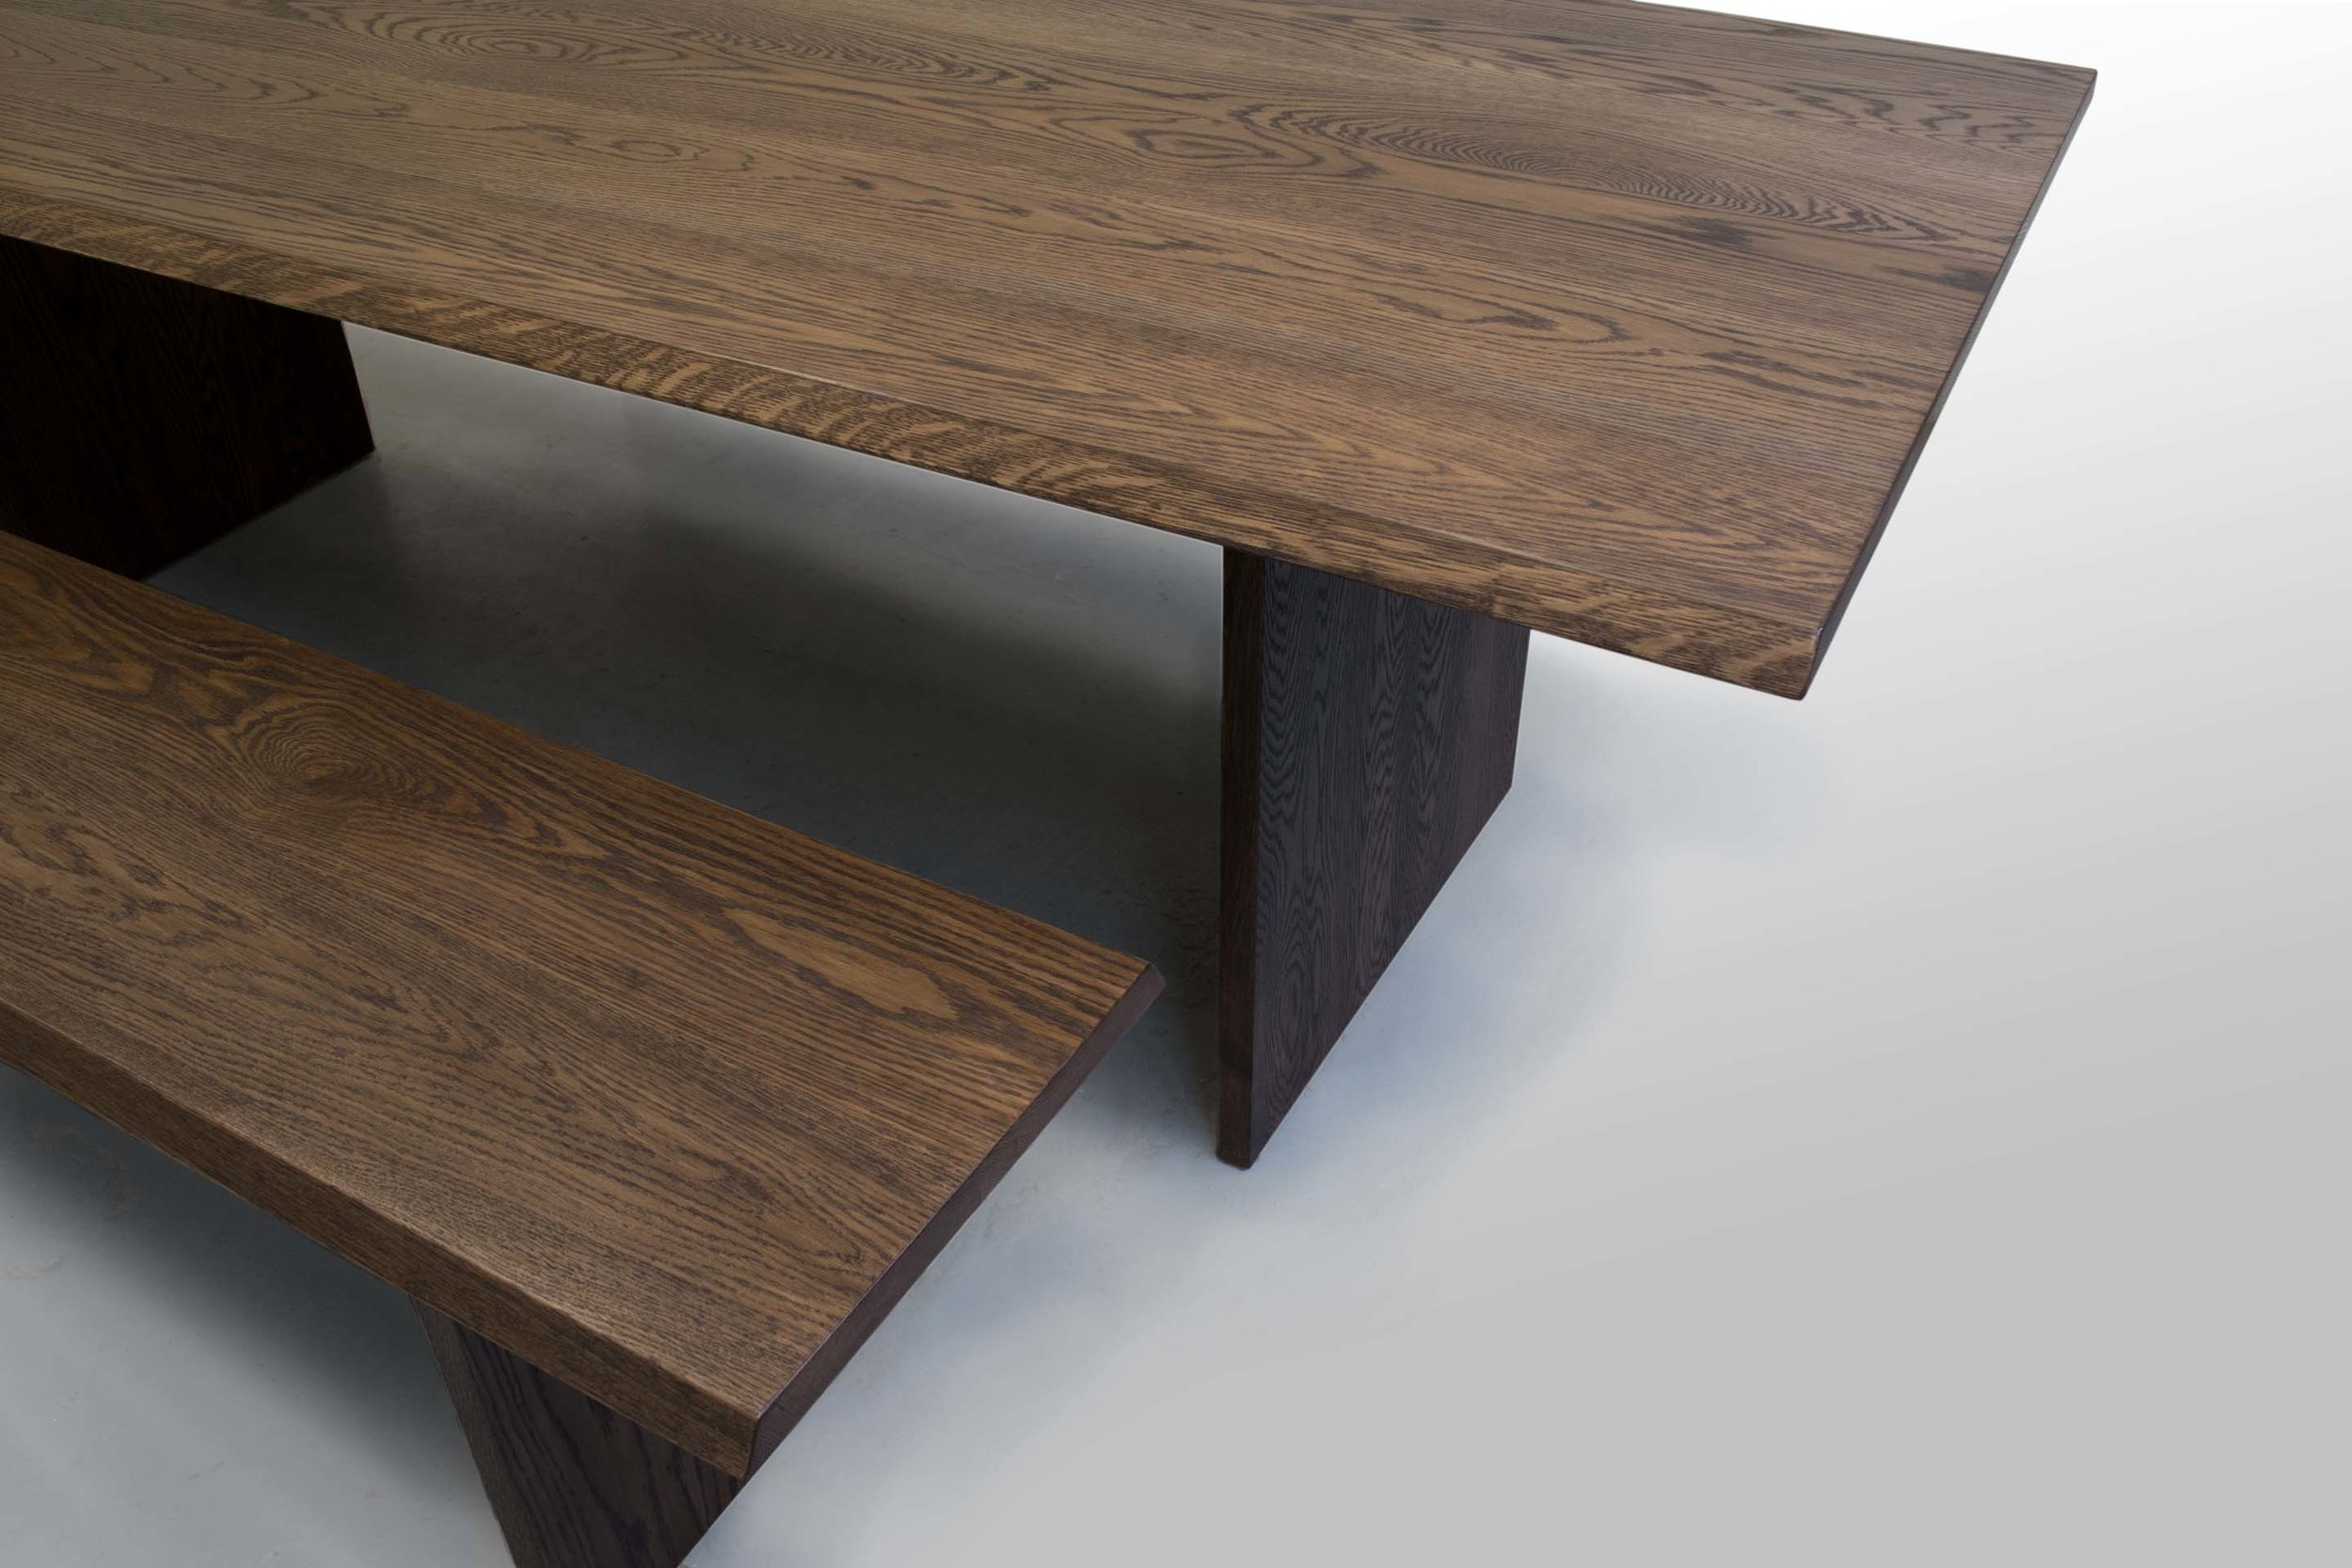 Oak table with benches6.jpg